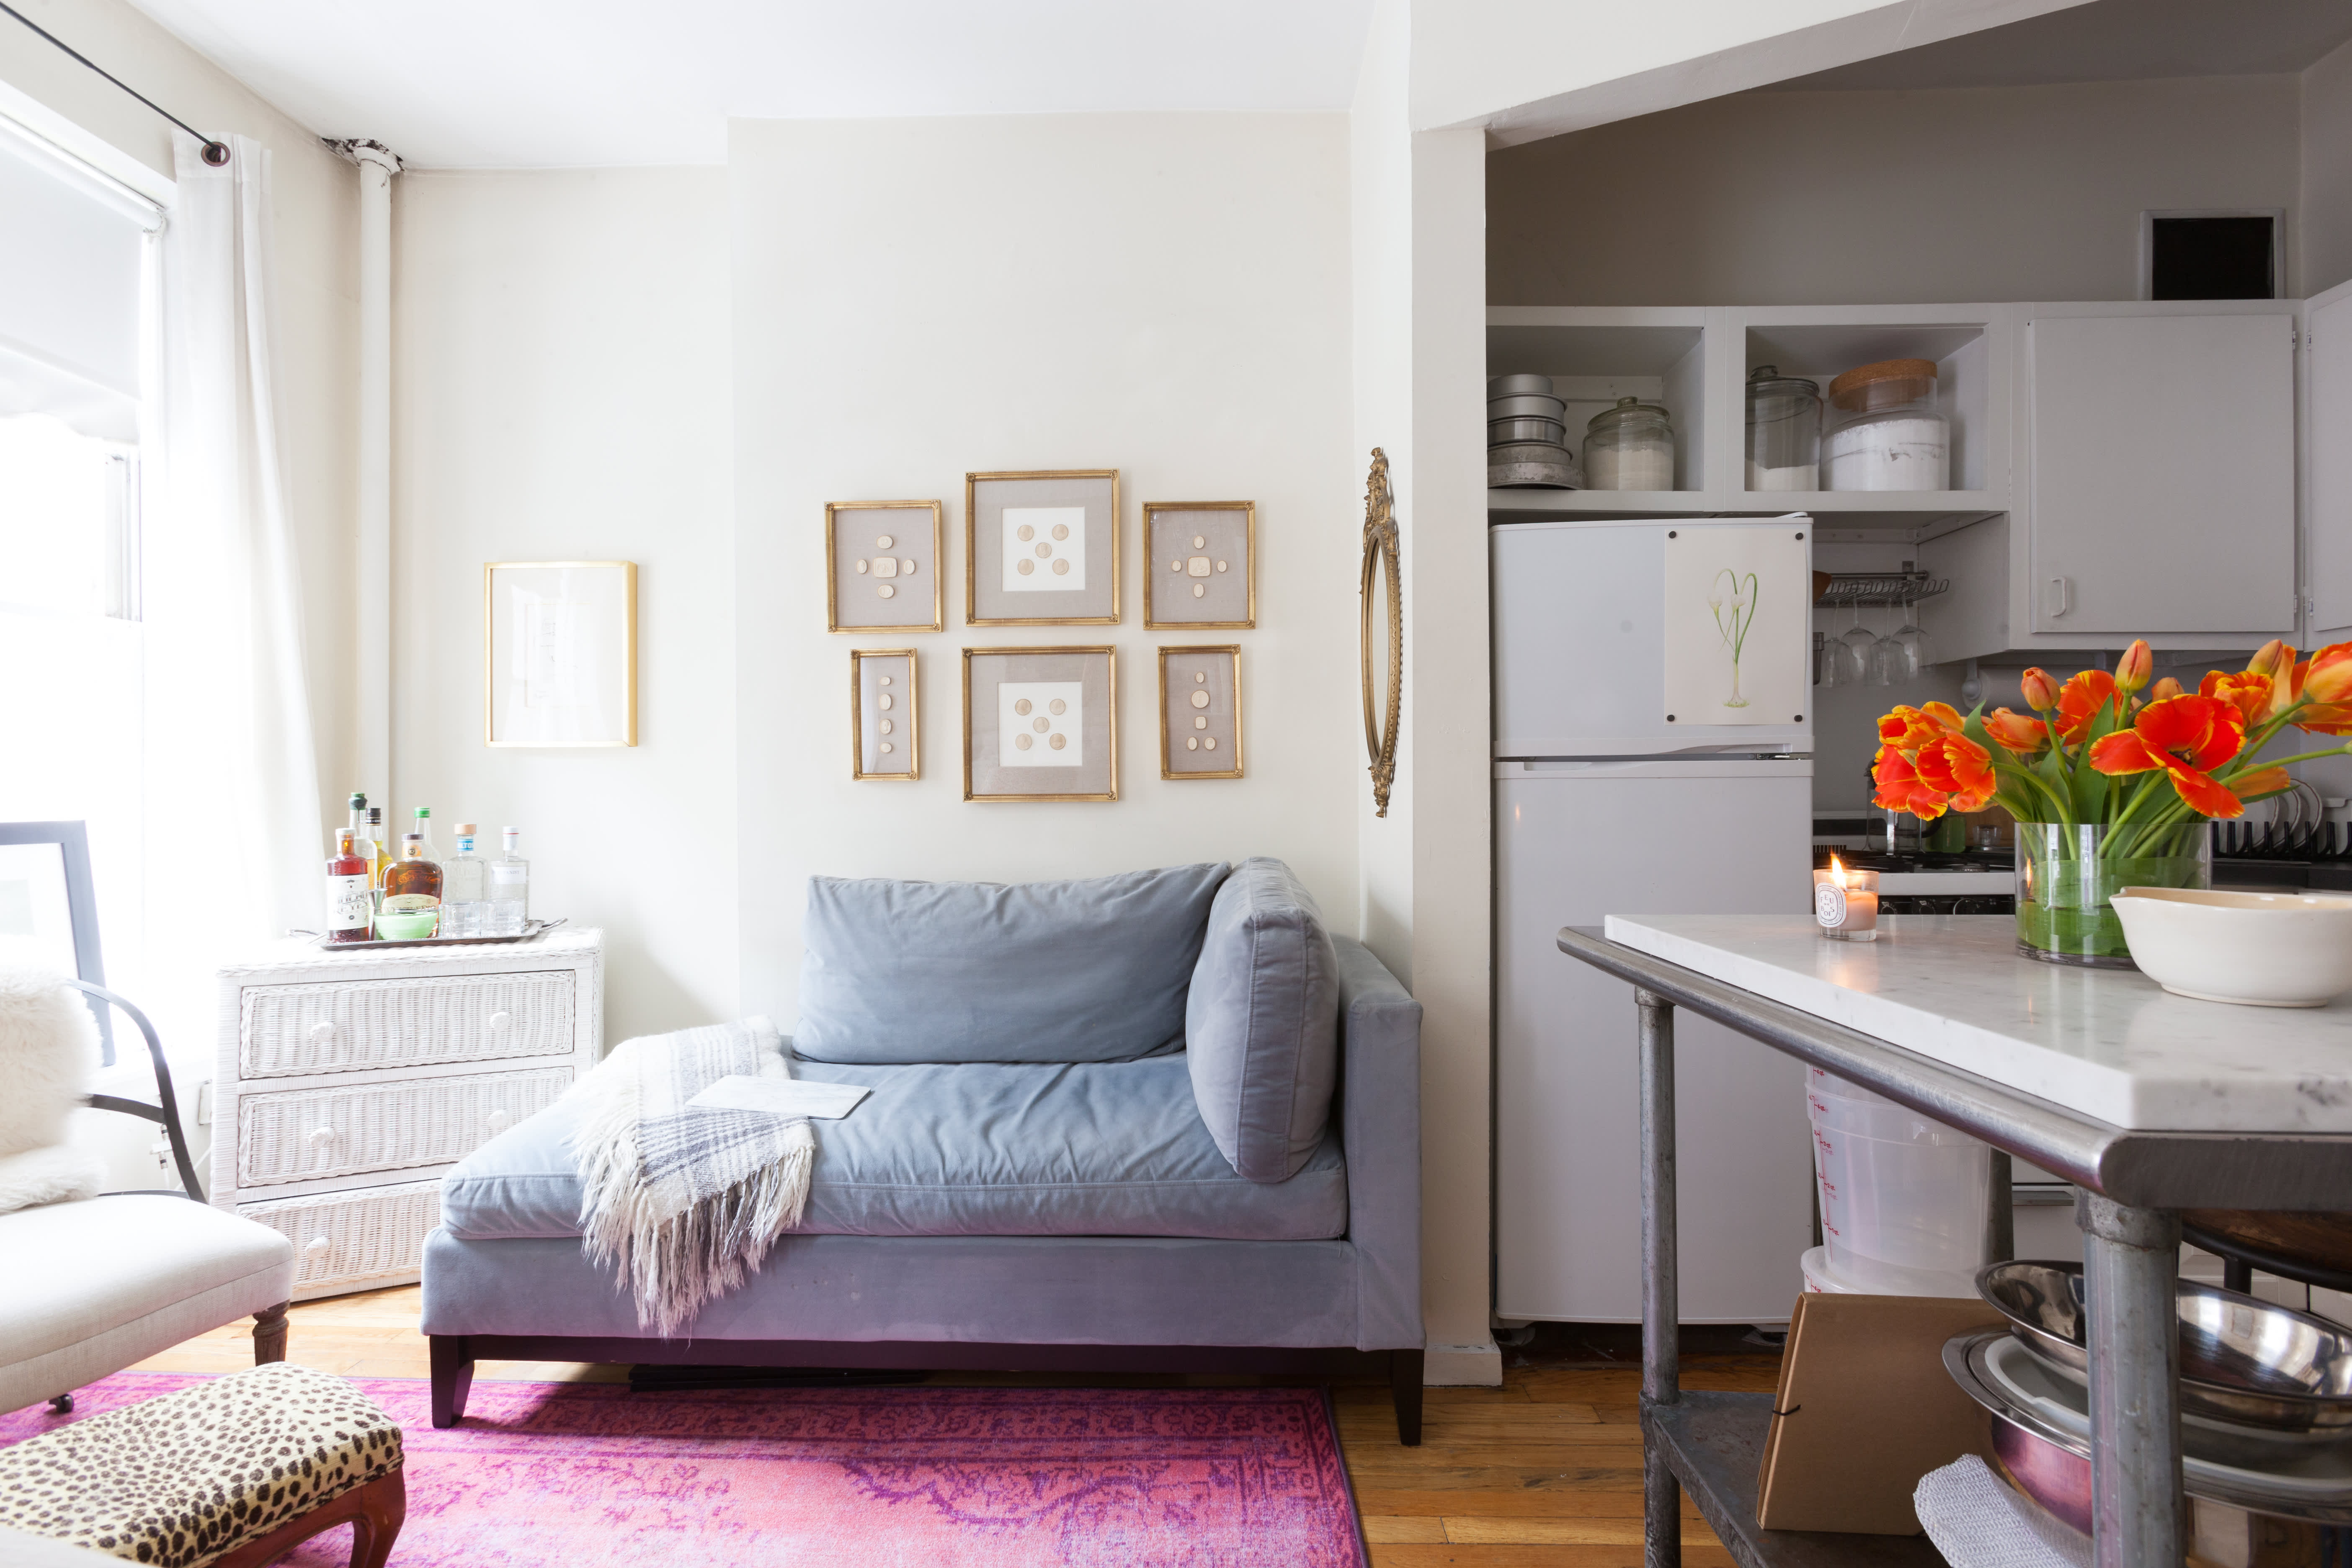 House tour small but sweet 190 square foot nyc studio - Small couch for studio ...